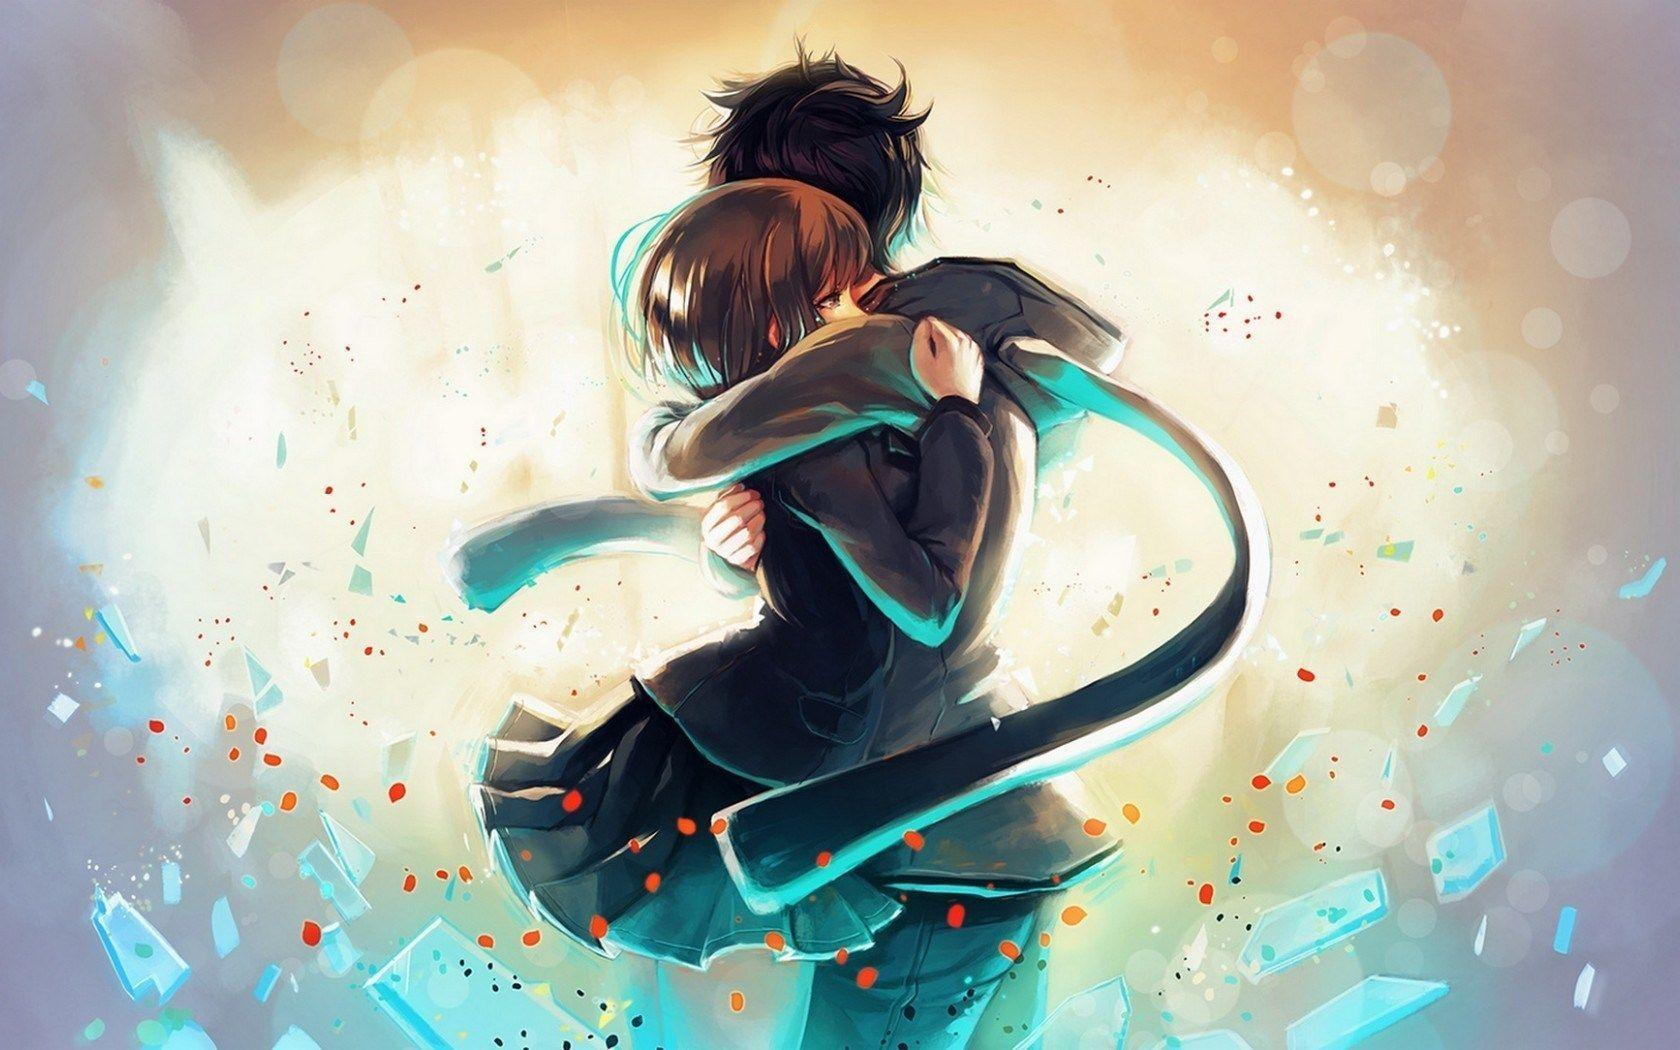 Anime Girl Boy Hug Love Wallpapers X